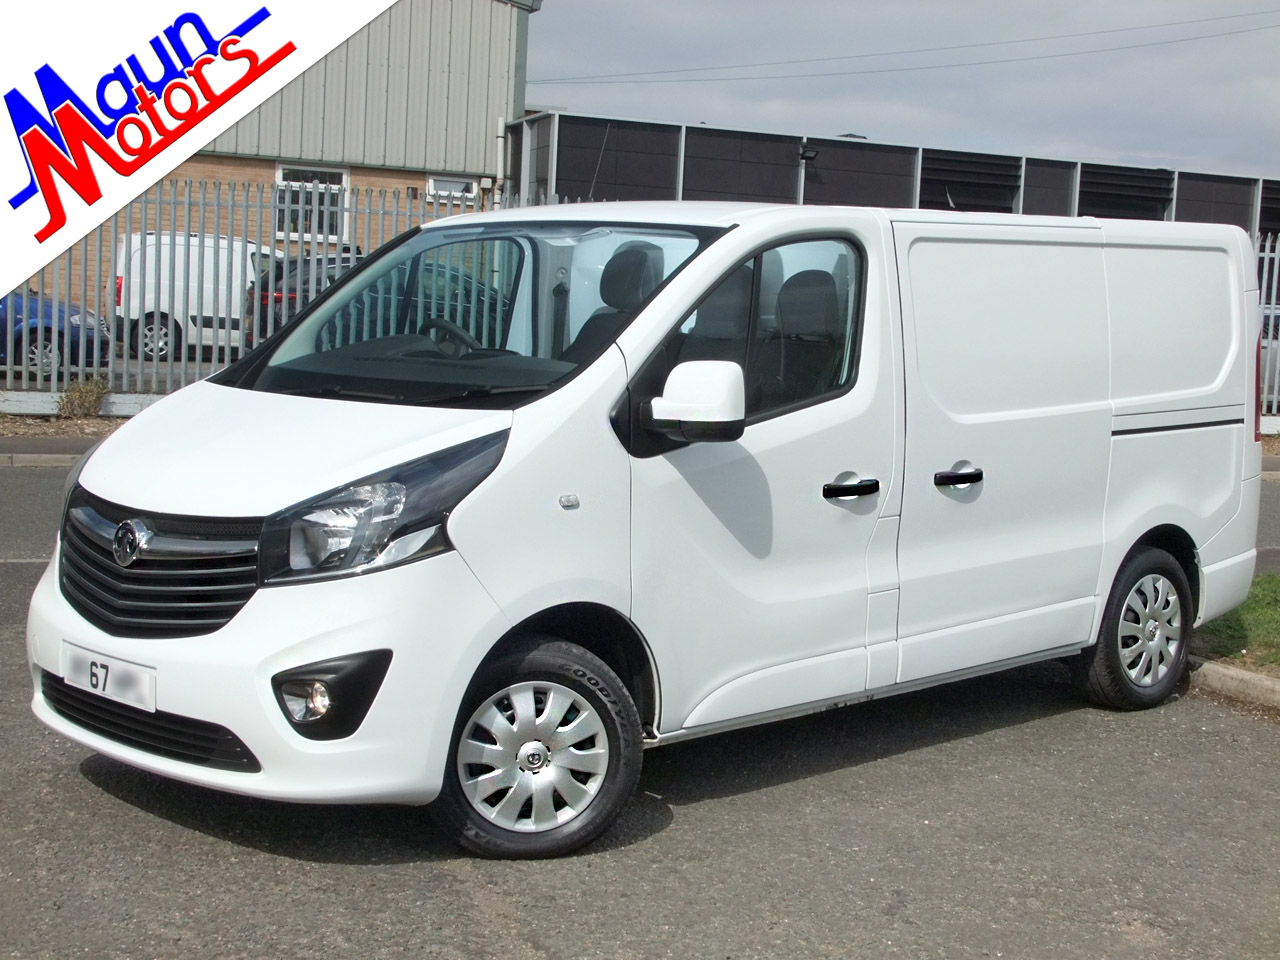 Vauxhall Vivaro used vans for sale